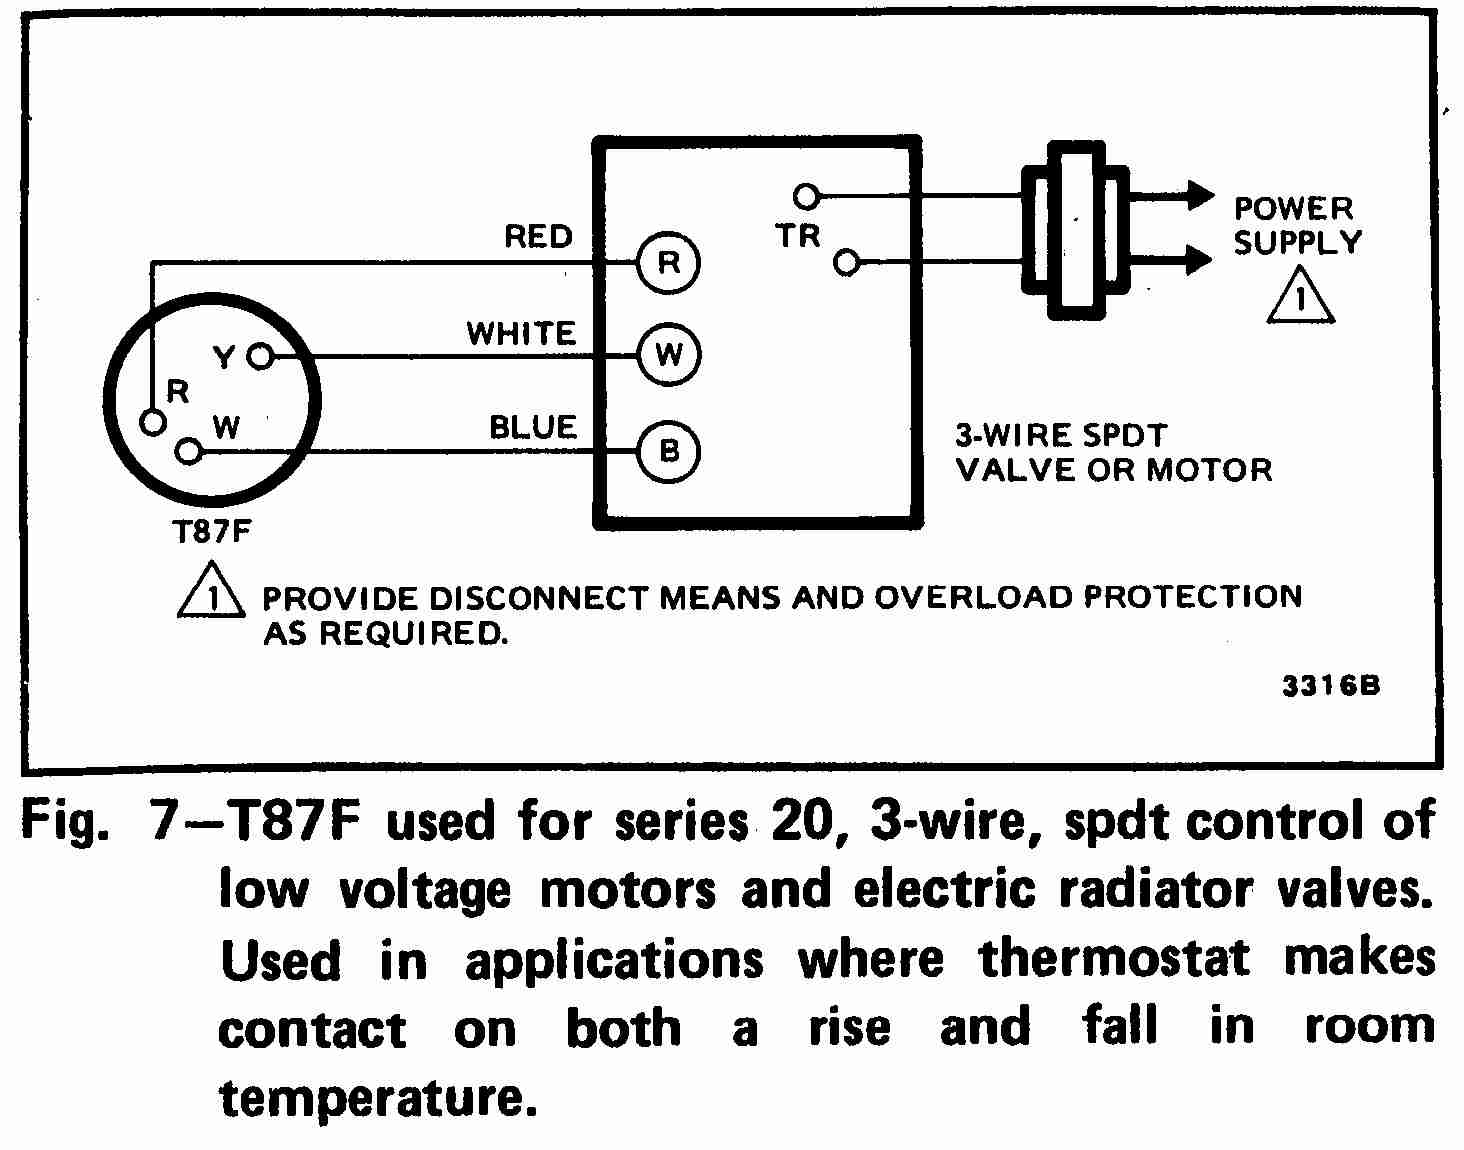 TT_T87F_0002_3W2_DJF room thermostat wiring diagrams for hvac systems thermostat wiring diagram at creativeand.co